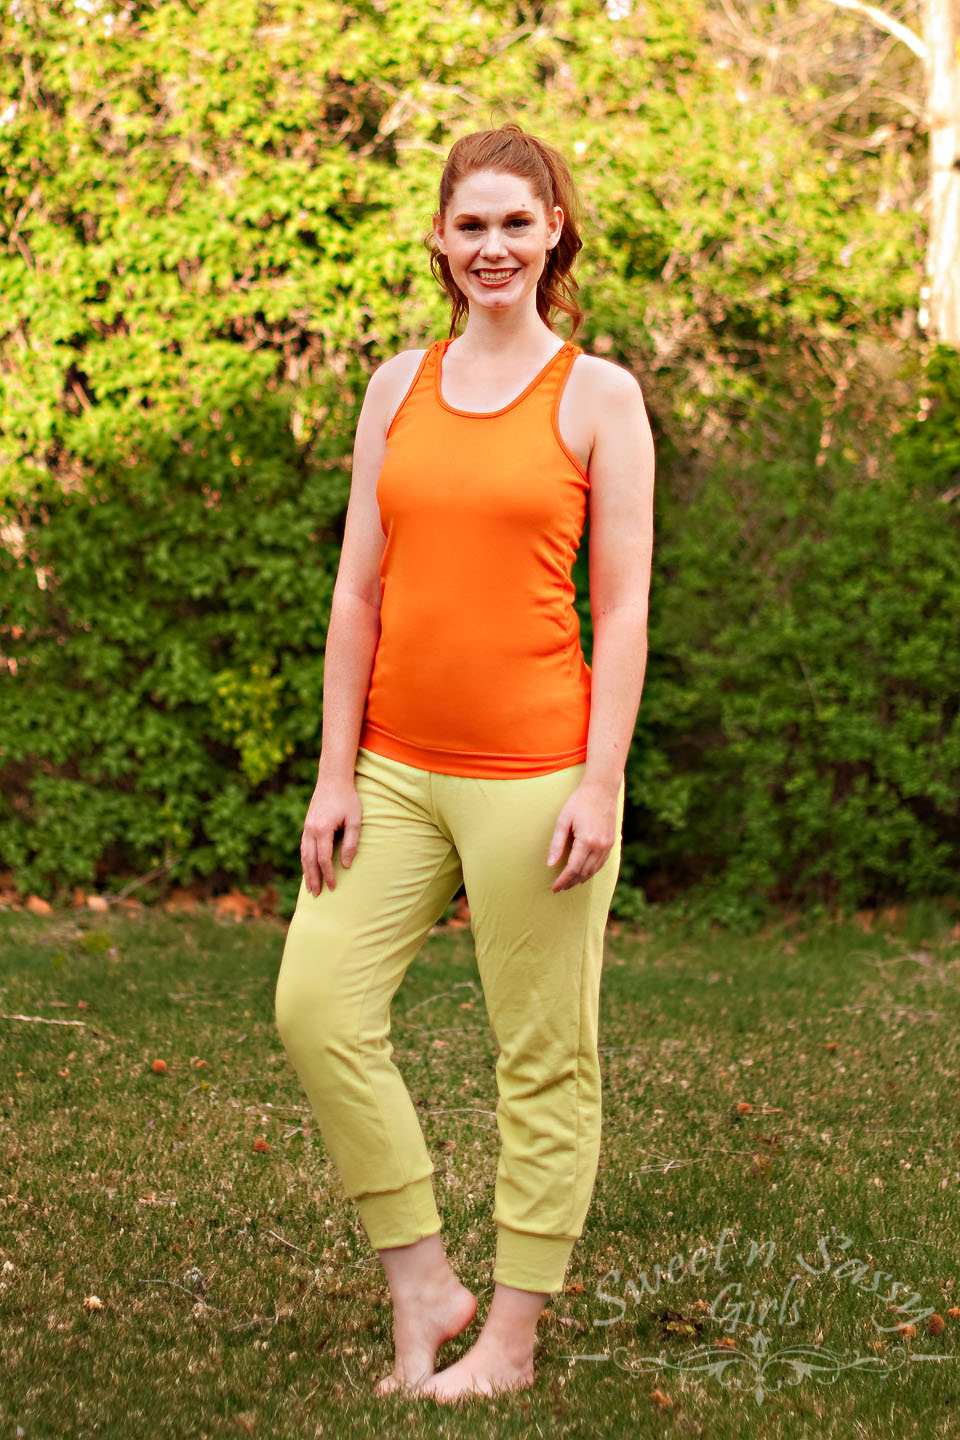 Jillian Tank and Sports Bra by GreenStyle Creations- Pattern Revolution